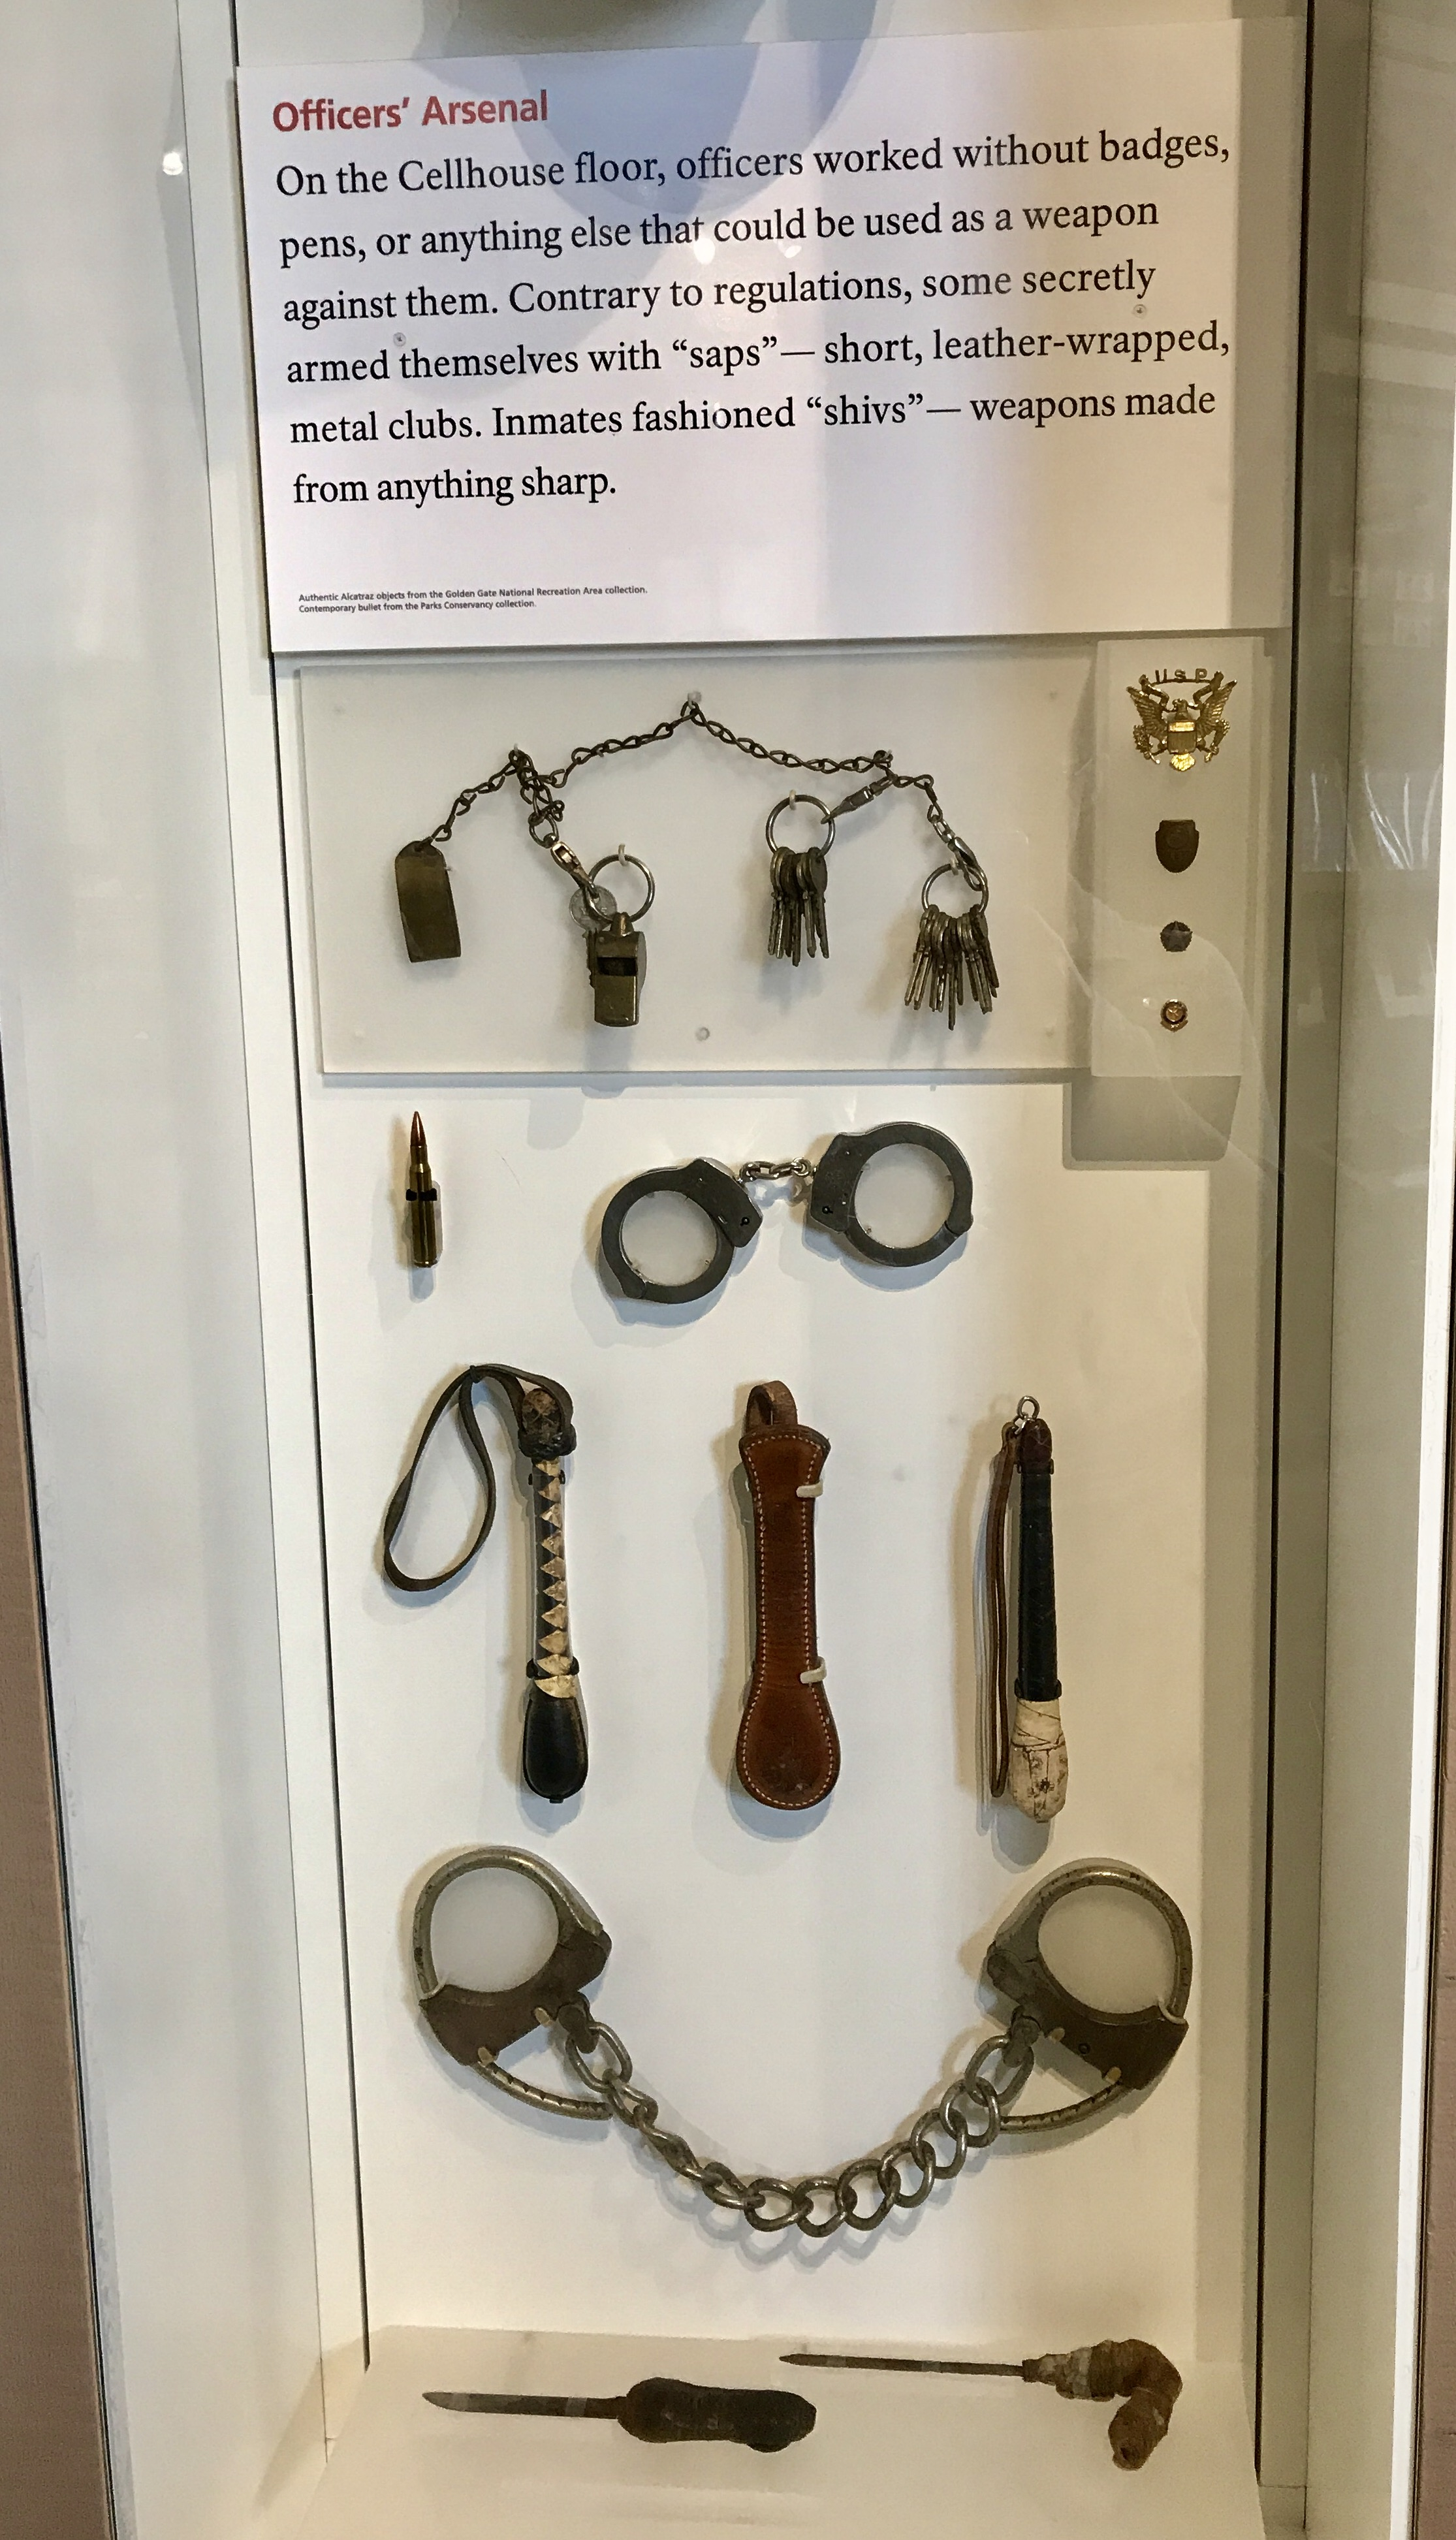 Officers' Arsenal